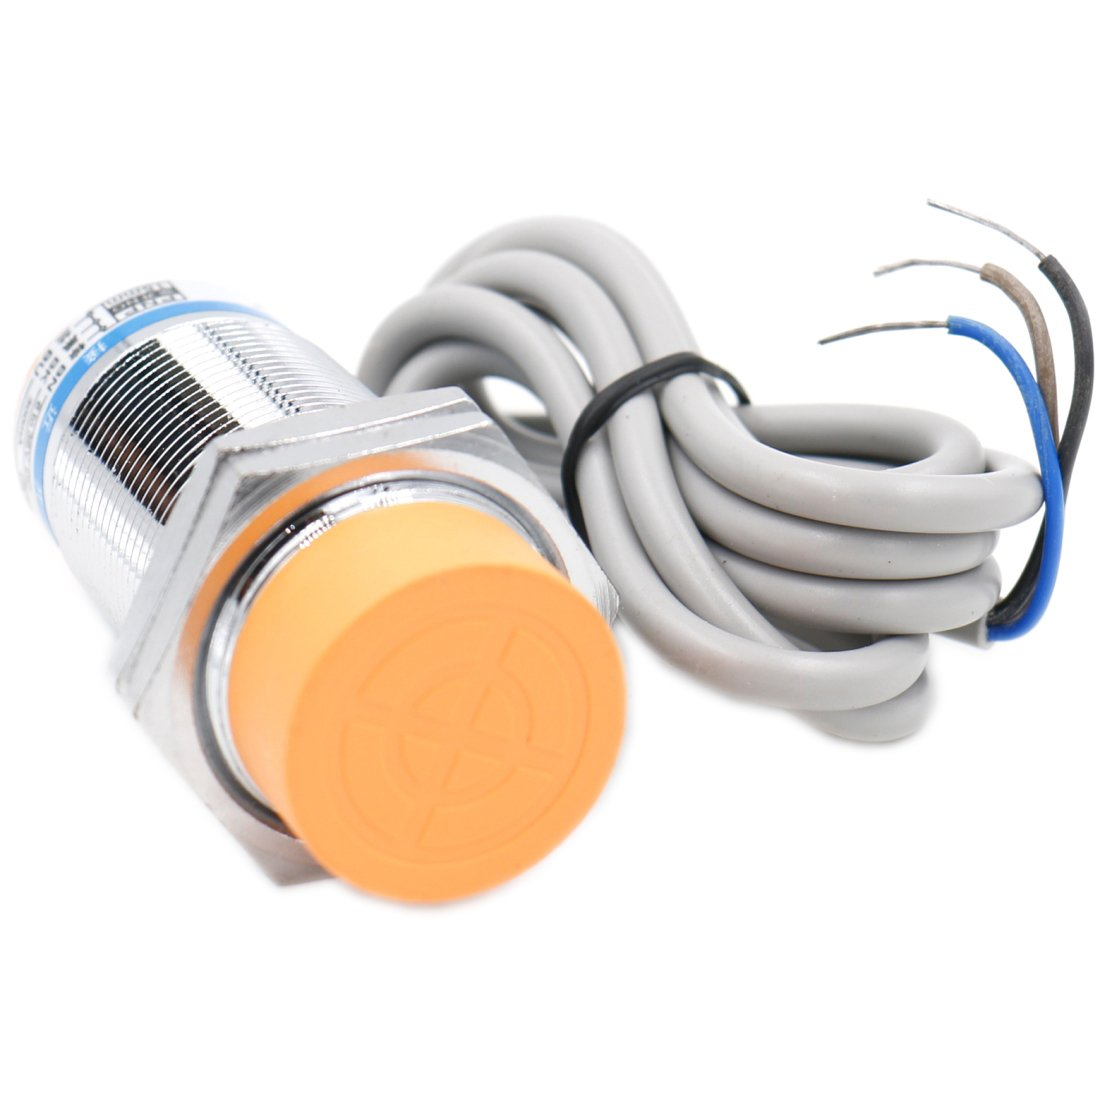 Heschen inductive proximity sensor switch LJ30A3-15-Z/BY detector 15 mm 6-36 VDC 300mA PNP normally open(NO) 3 wire Heschen Electric Co.Ltd HS-LJ30A3-15-Z/BY